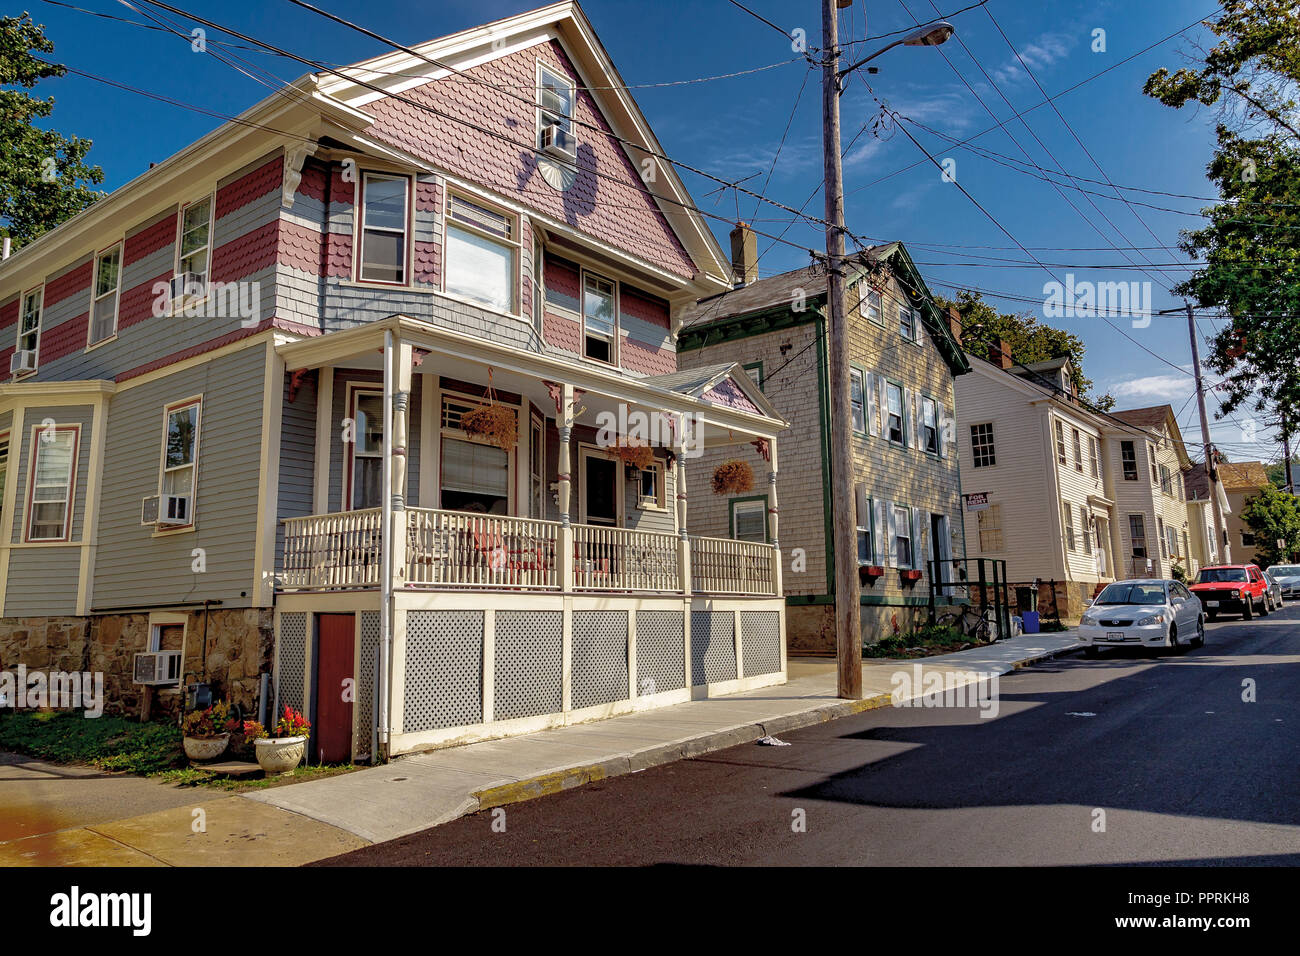 Wooden clap board house with front porch and veranda ,with pink and grey tile cladding on the upper level ,Howard St,Newport Rhode Island,USA - Stock Image